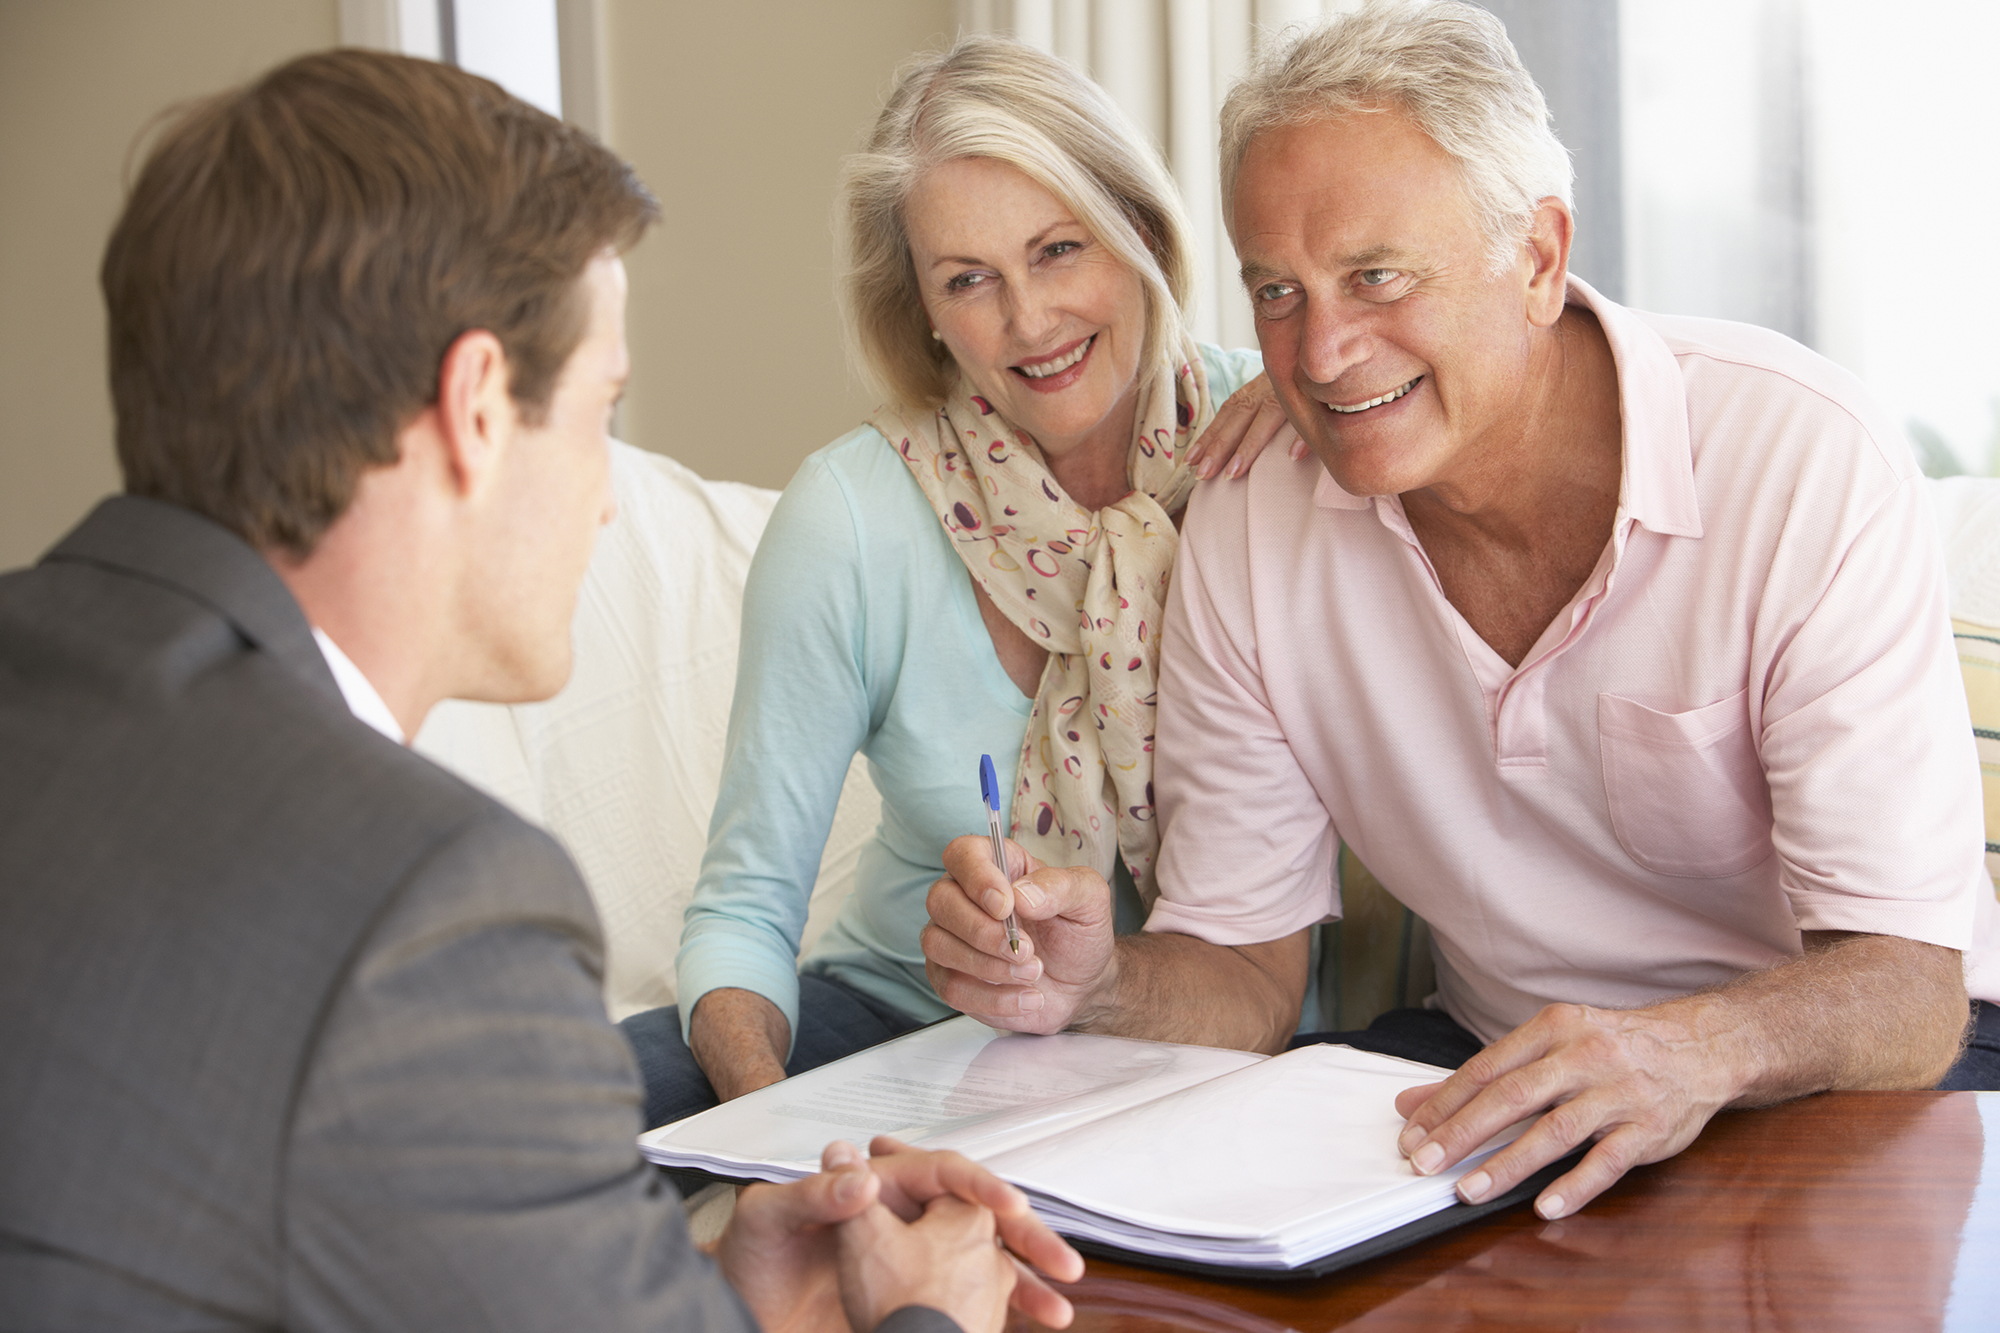 A couple getting financial advice. (Image: Shutterstock)